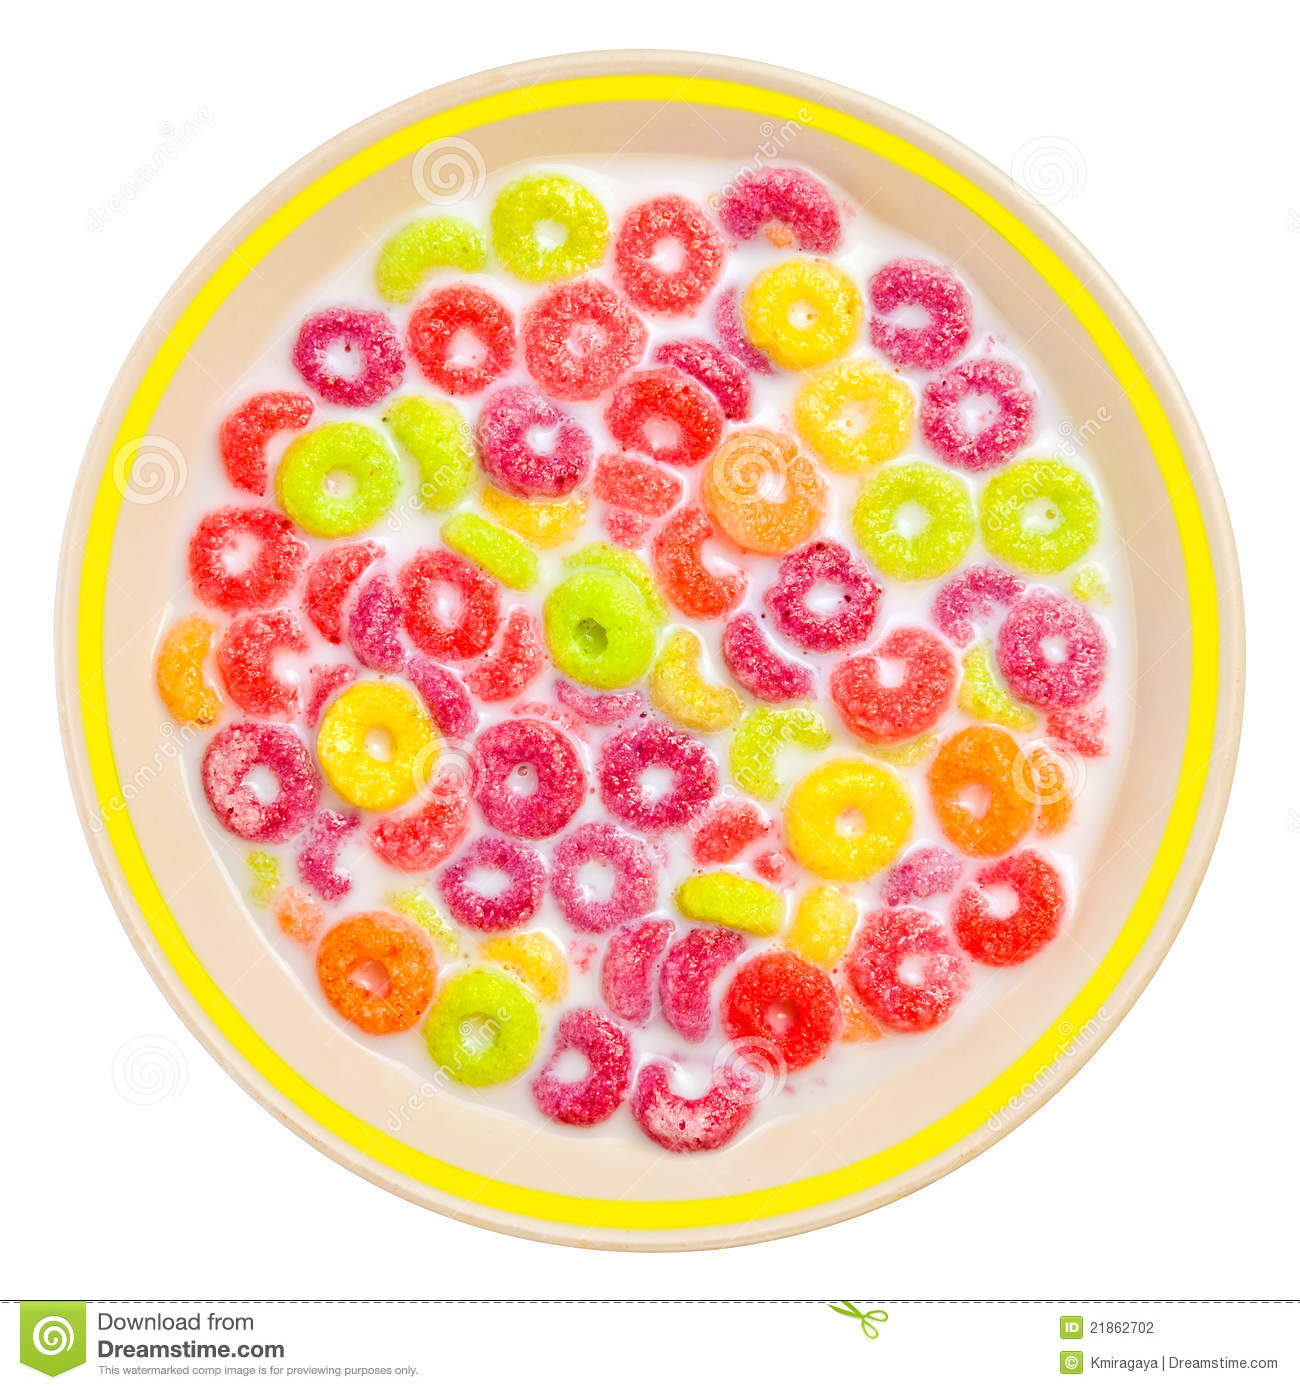 Cereal clipart bowl cereal. Colorful pencil and in